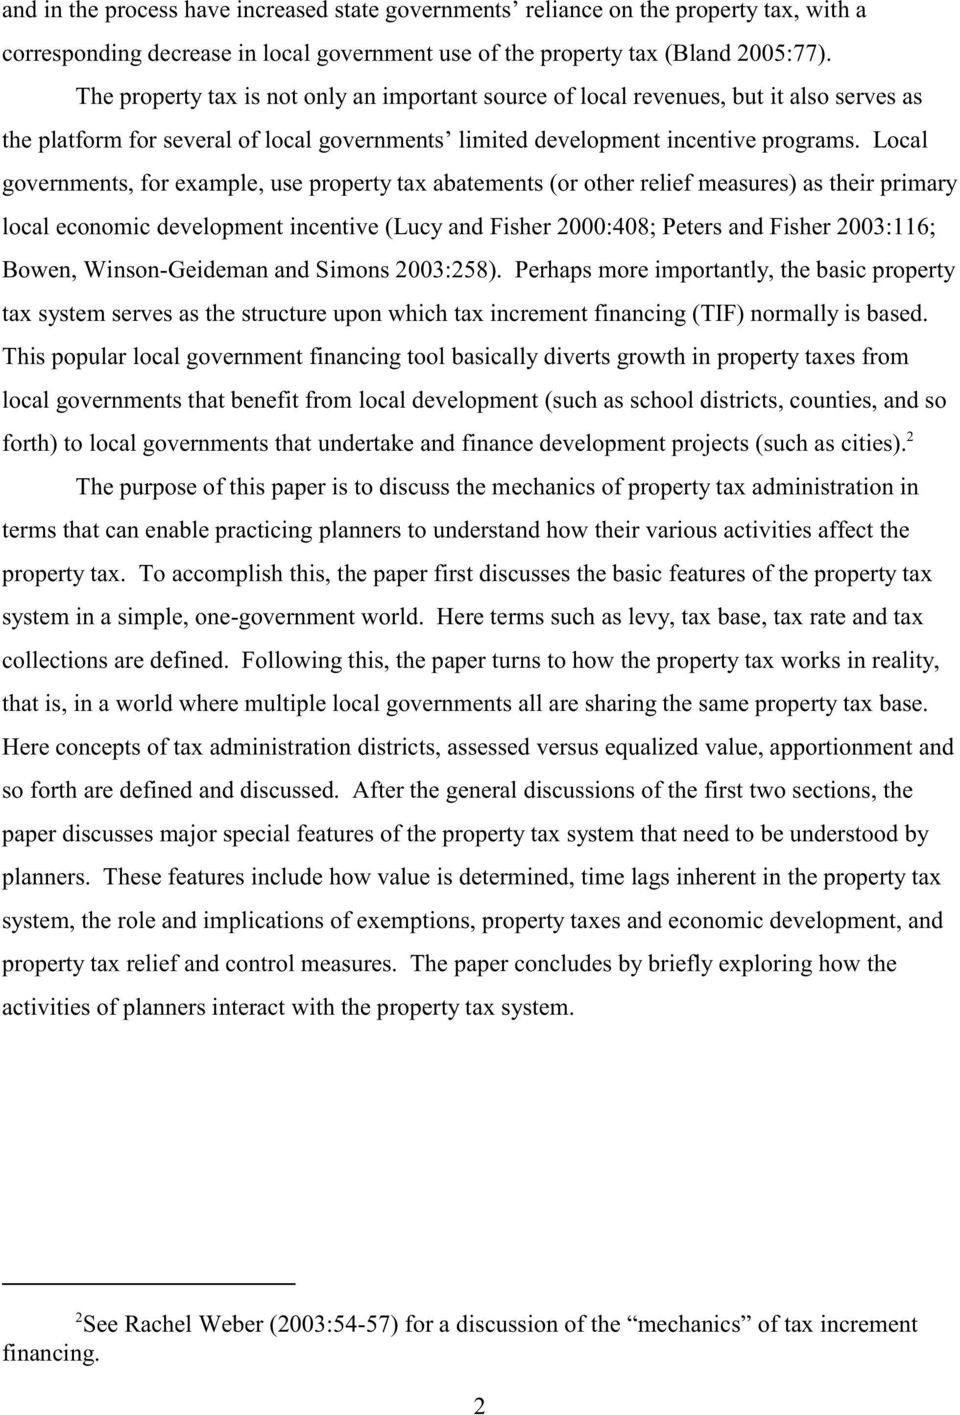 Local governments, for example, use property tax abatements (or other relief measures) as their primary local economic development incentive (Lucy and Fisher 2000:408; Peters and Fisher 2003:116;